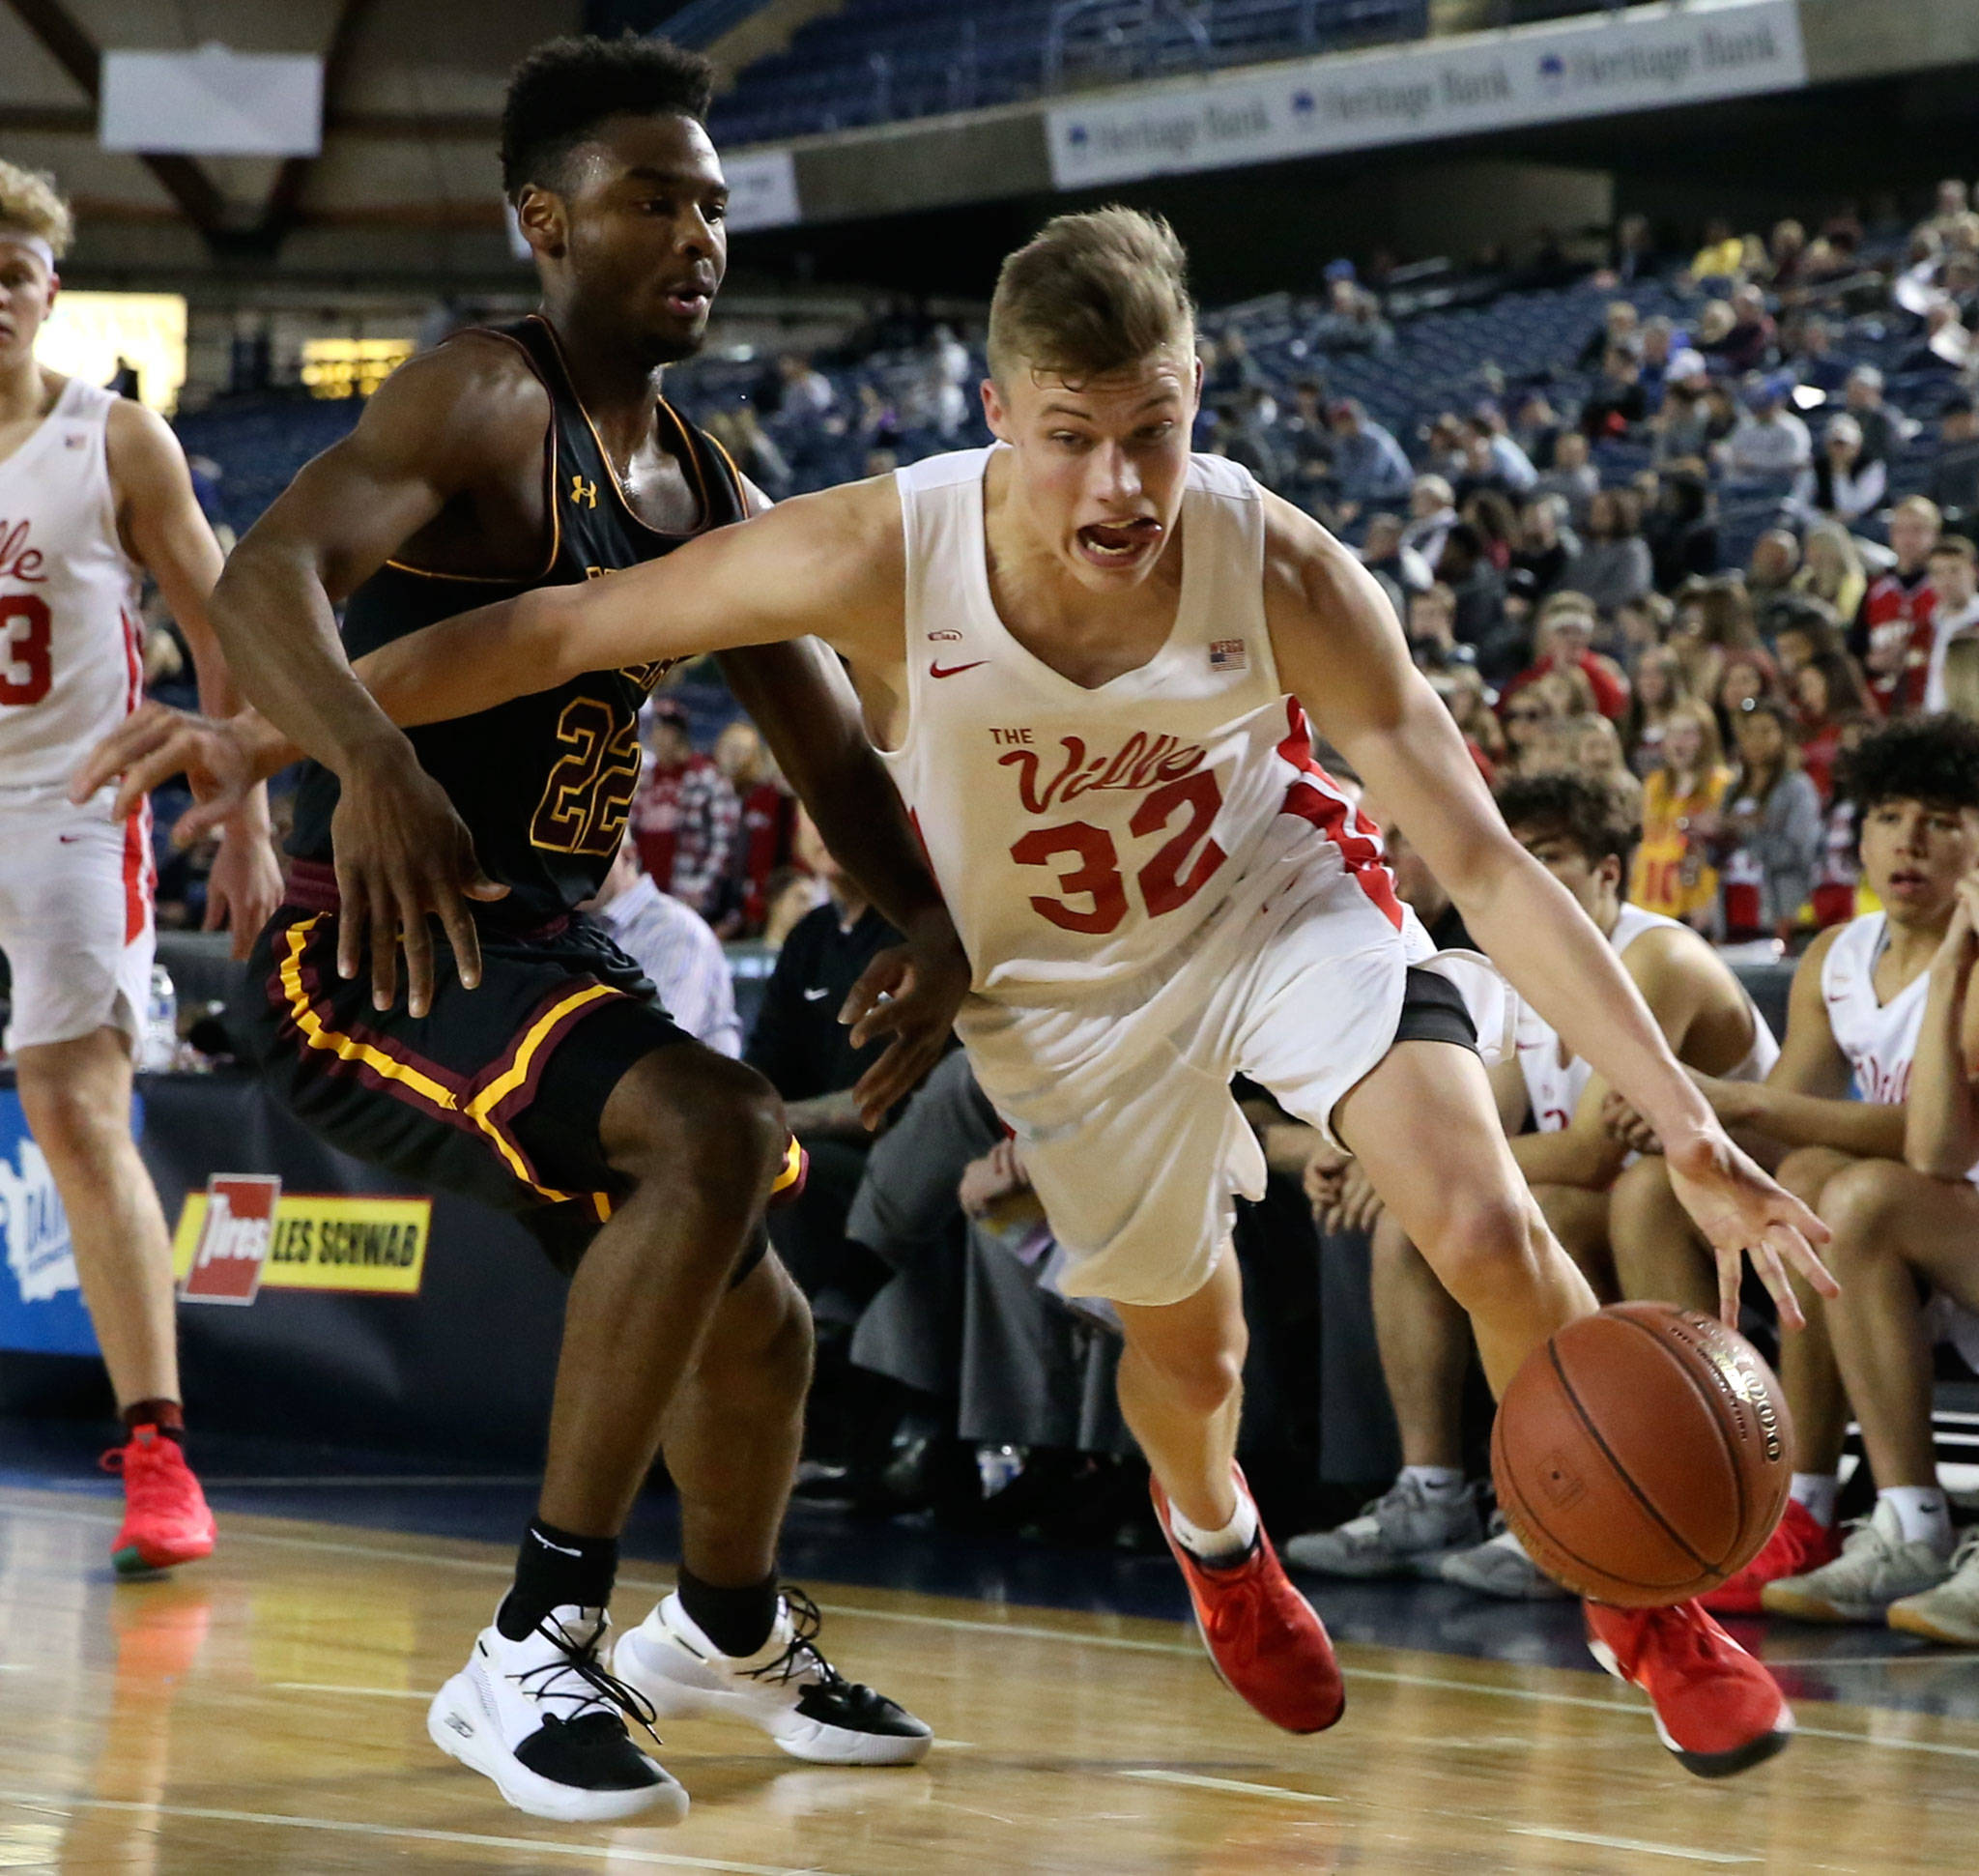 Marysville-Pilchuck's Aaron Kalab drives the baseline with O'Dea Jermaine Davis trailing Thursday afternoon at the Tacoma Dome on February 28, 2019. The Tomahawks lost 63-53. (Kevin Clark / The Herald)